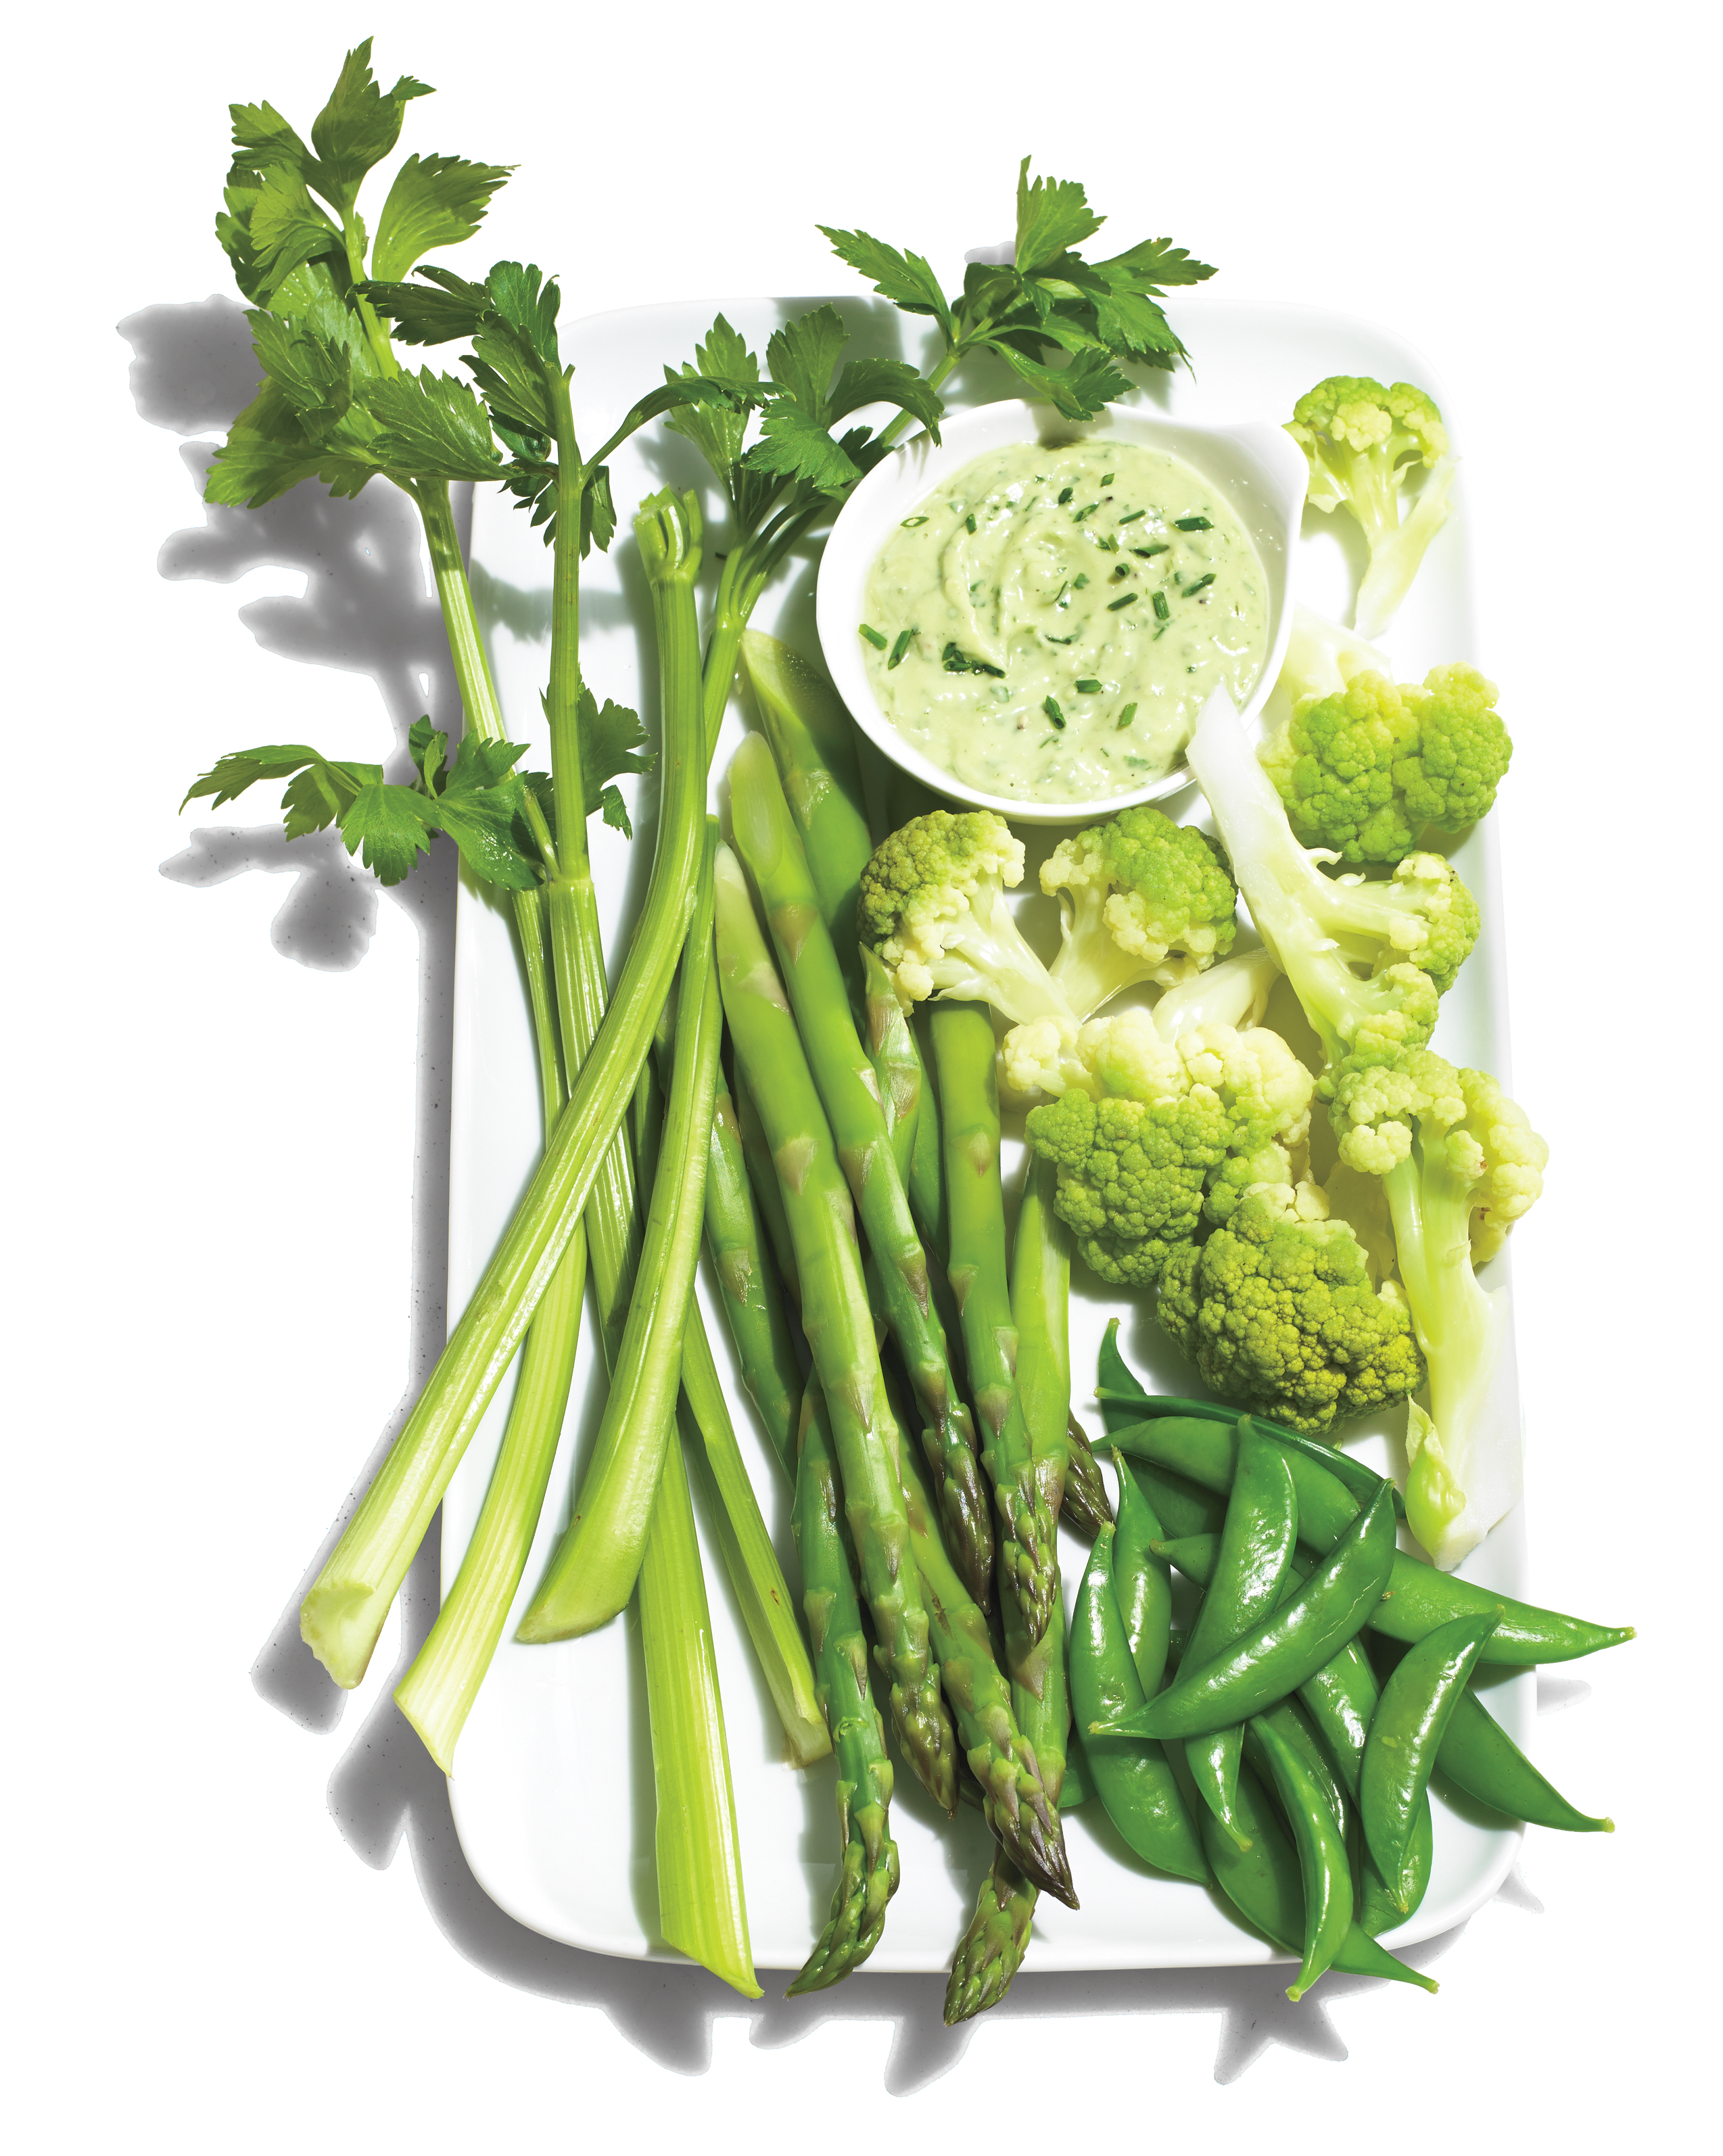 green-crudite-vegetable-with-dip-462-d111686.jpg